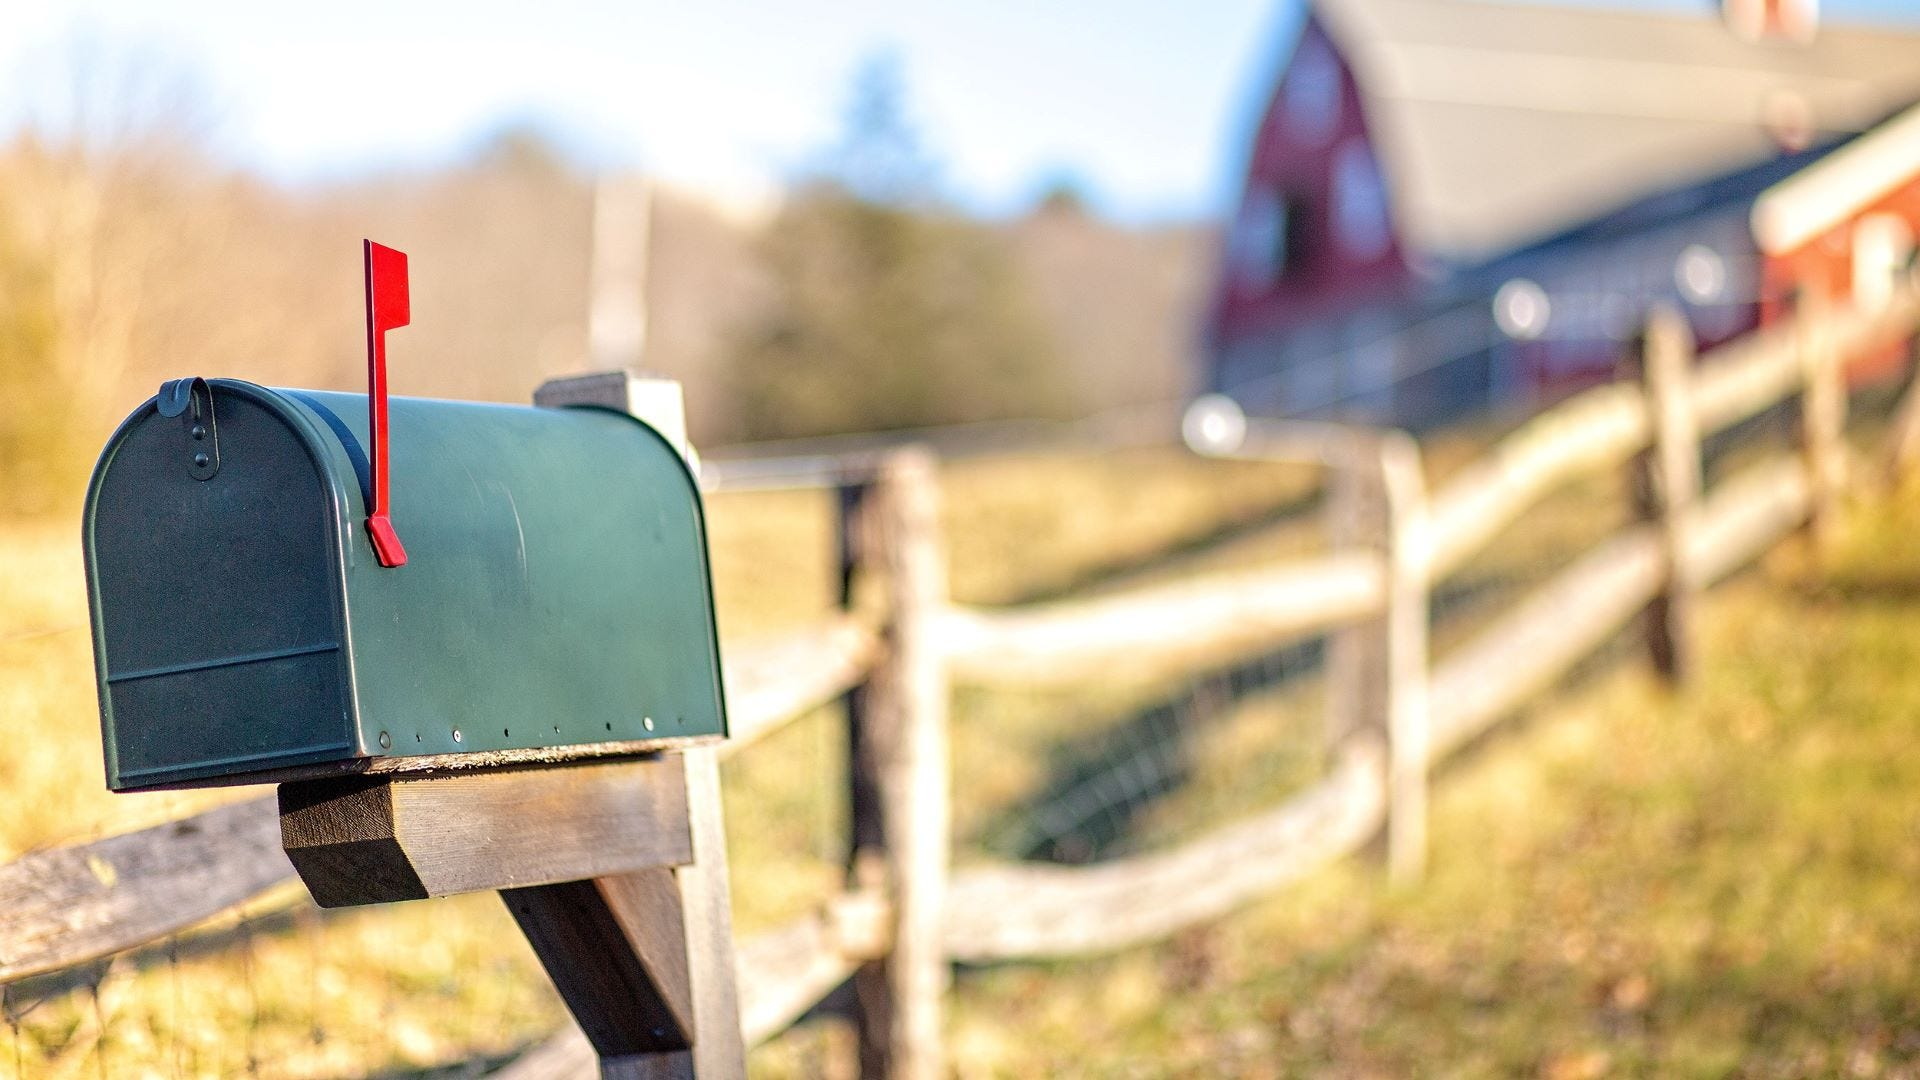 A raised flag on a mailbox with a barn in the background.